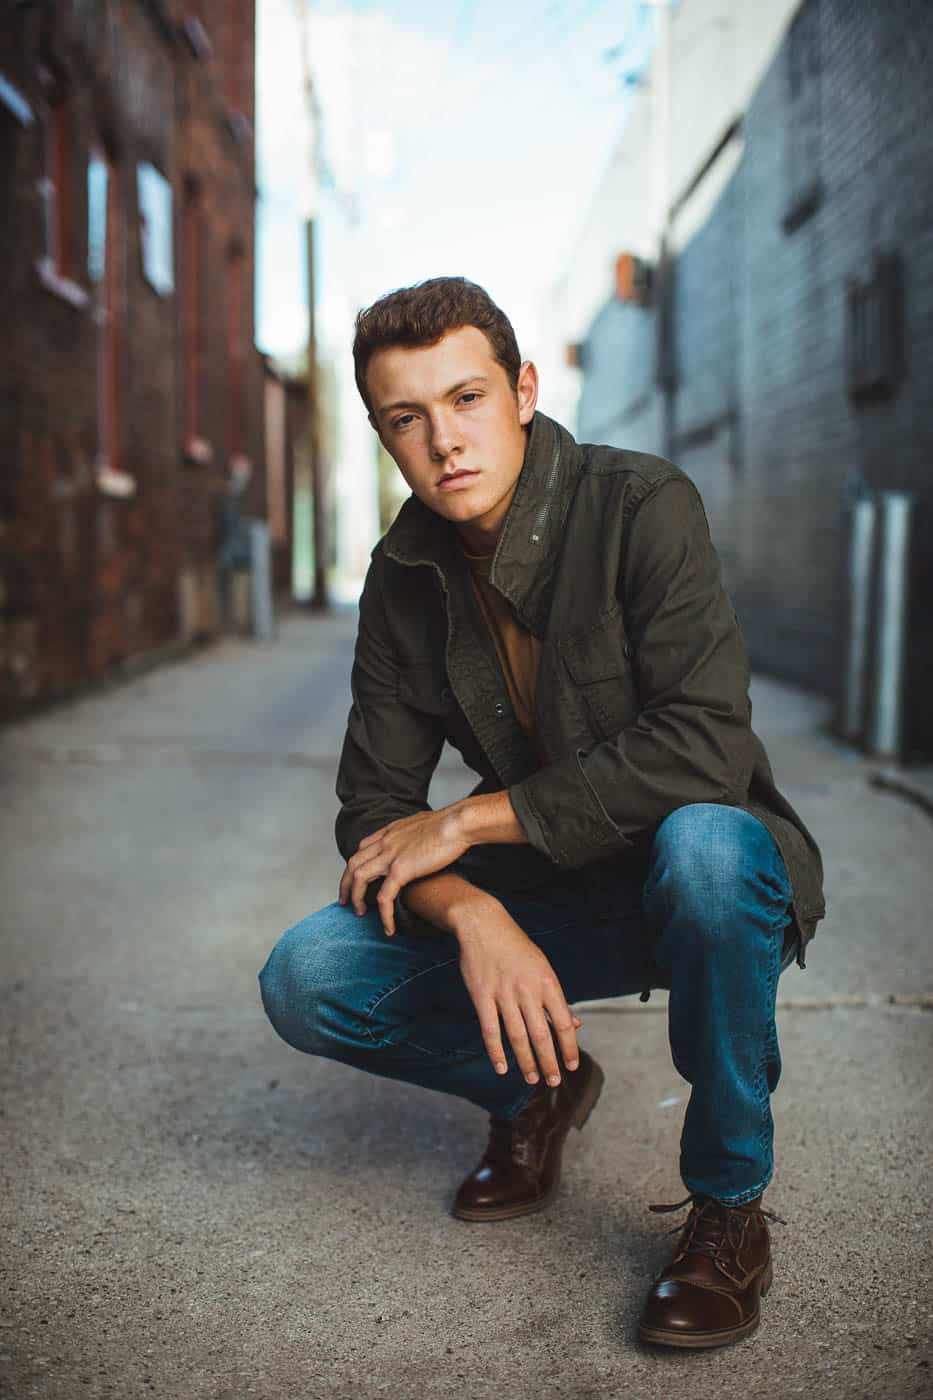 Guys Green Bay Wisconsin senior portraits taken downtown with an urban styled green army coat